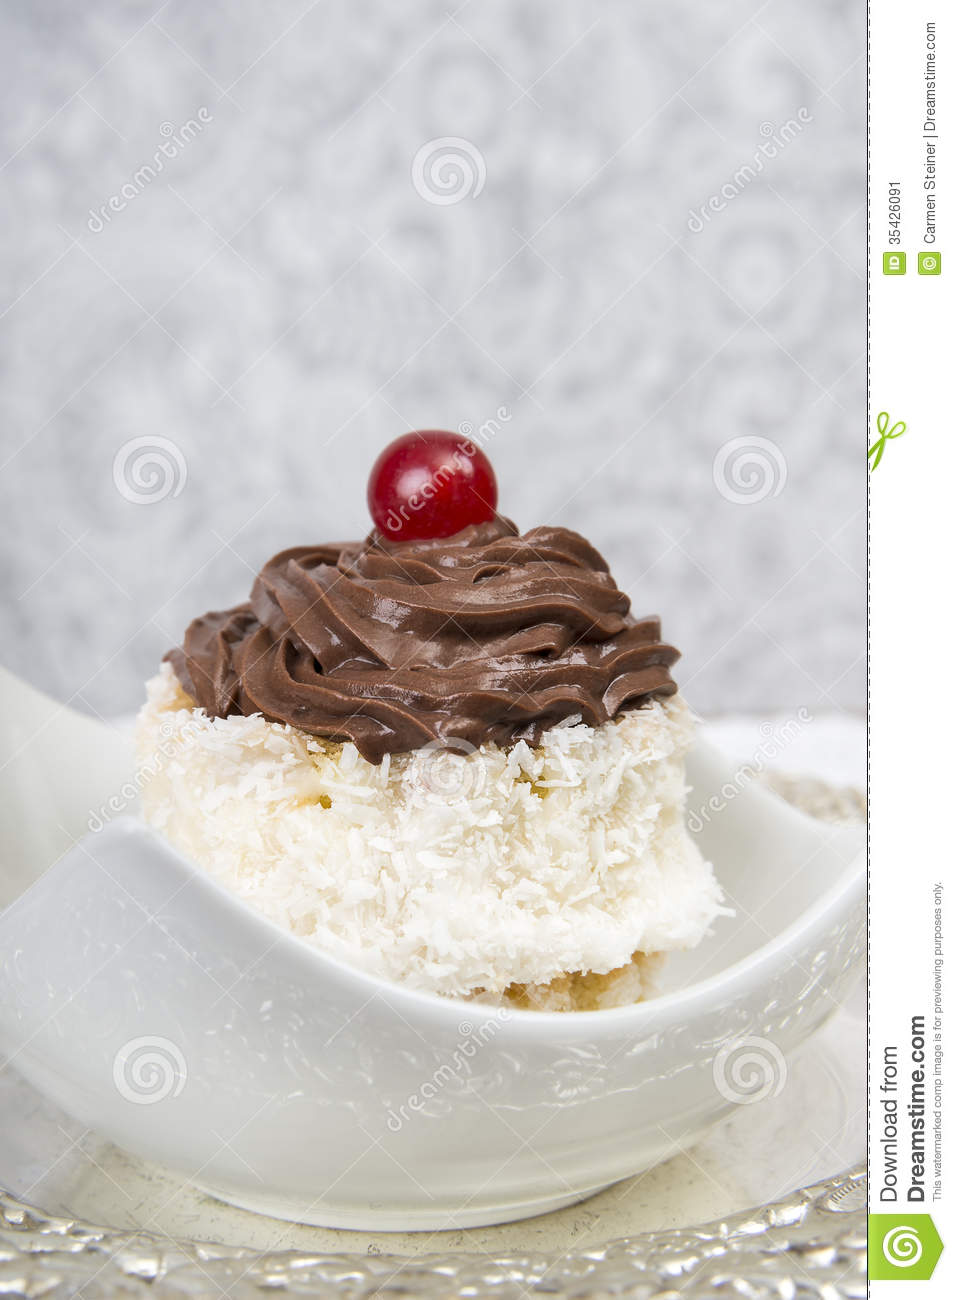 Coconut Chocolate Pudding With Coconut Flakes Recipe — Dishmaps